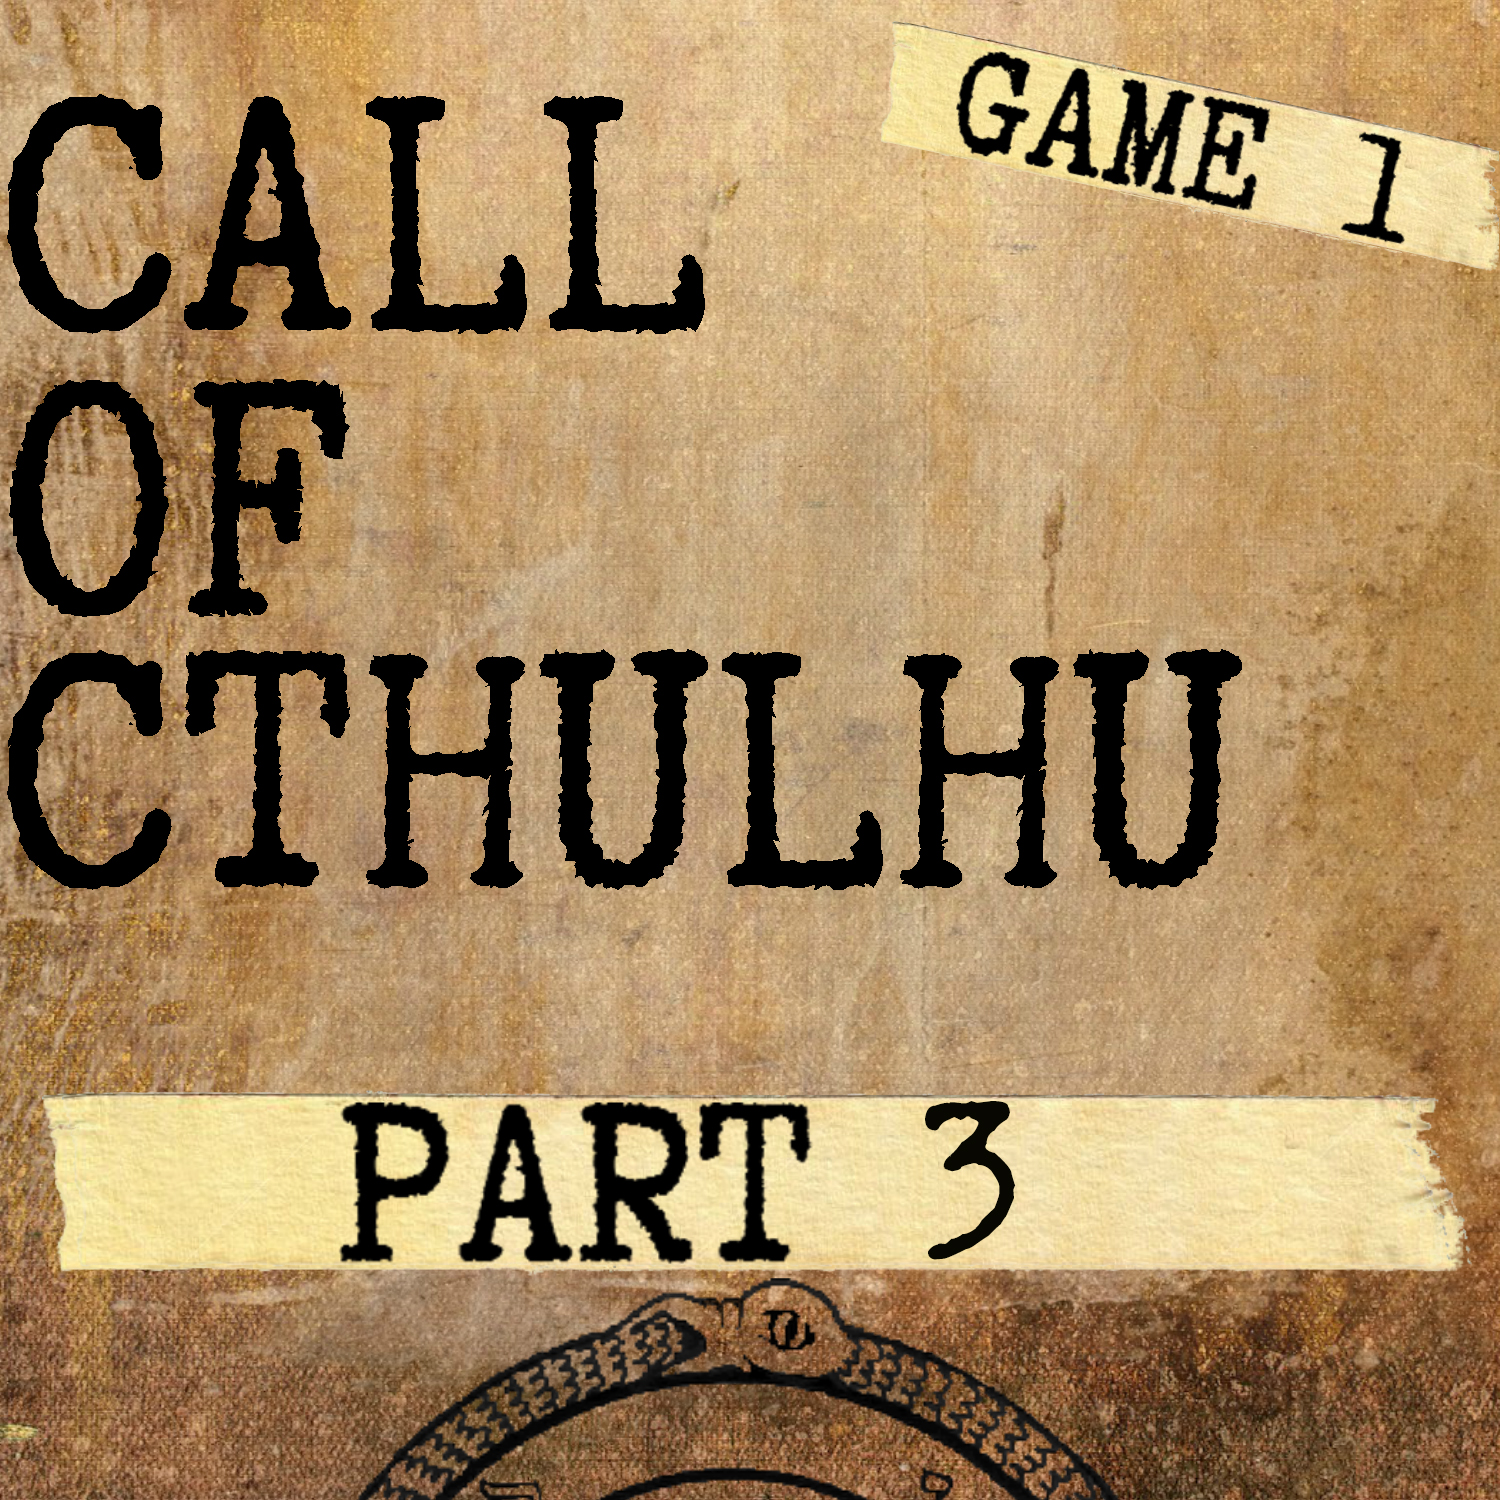 Artwork for Call of Cthulhu - Game 1: Part 3